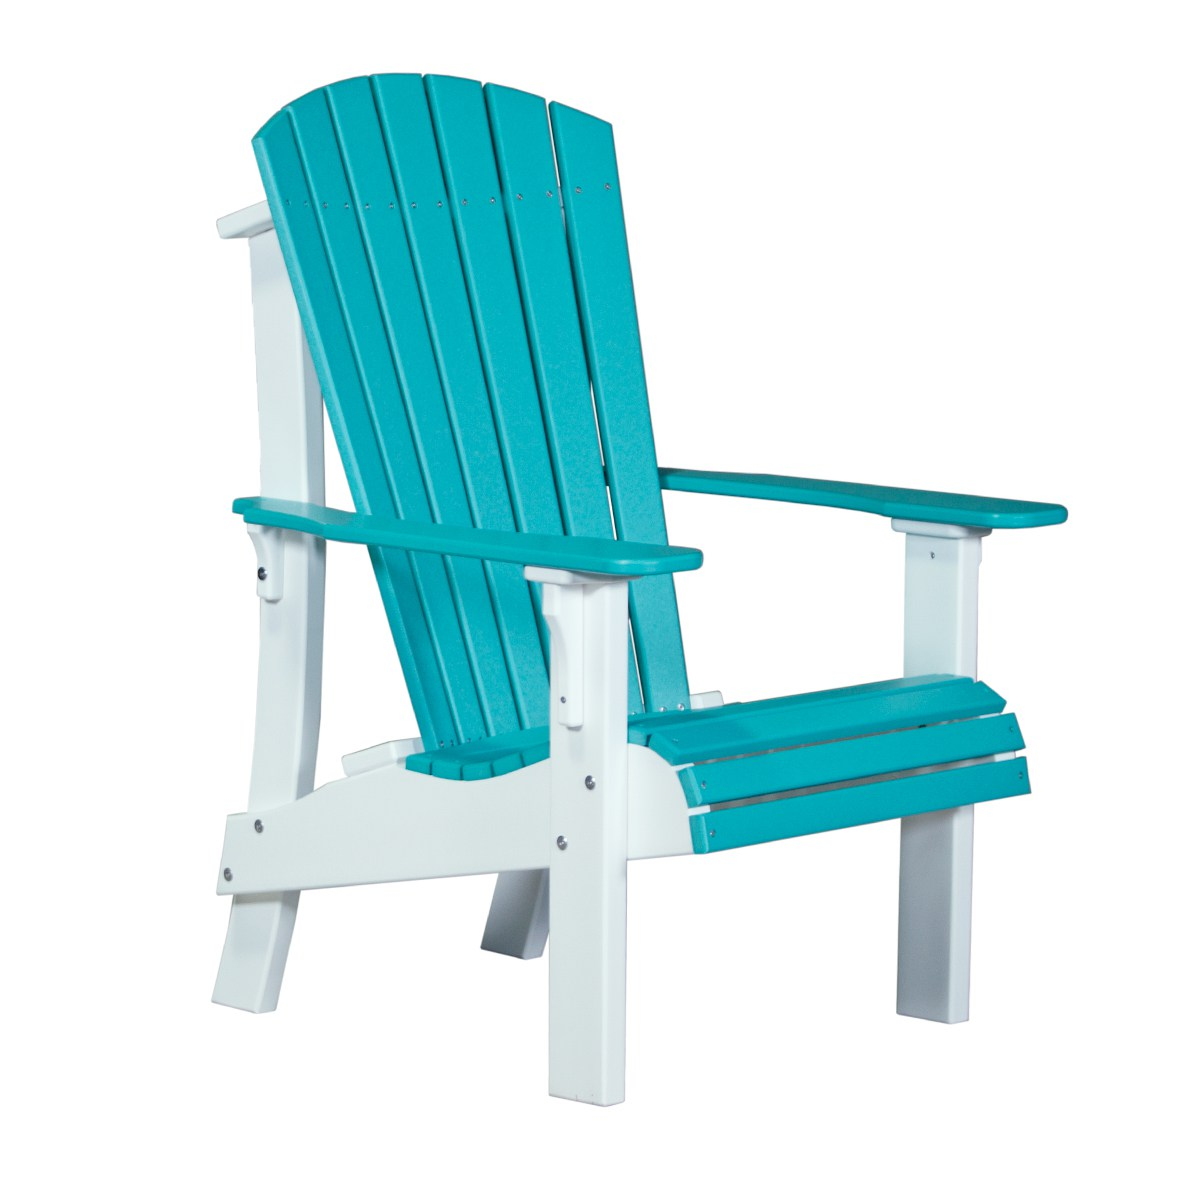 Blue Adirondack Chair Royal Adirondack Chair Recycled Patio Fine Oak Things